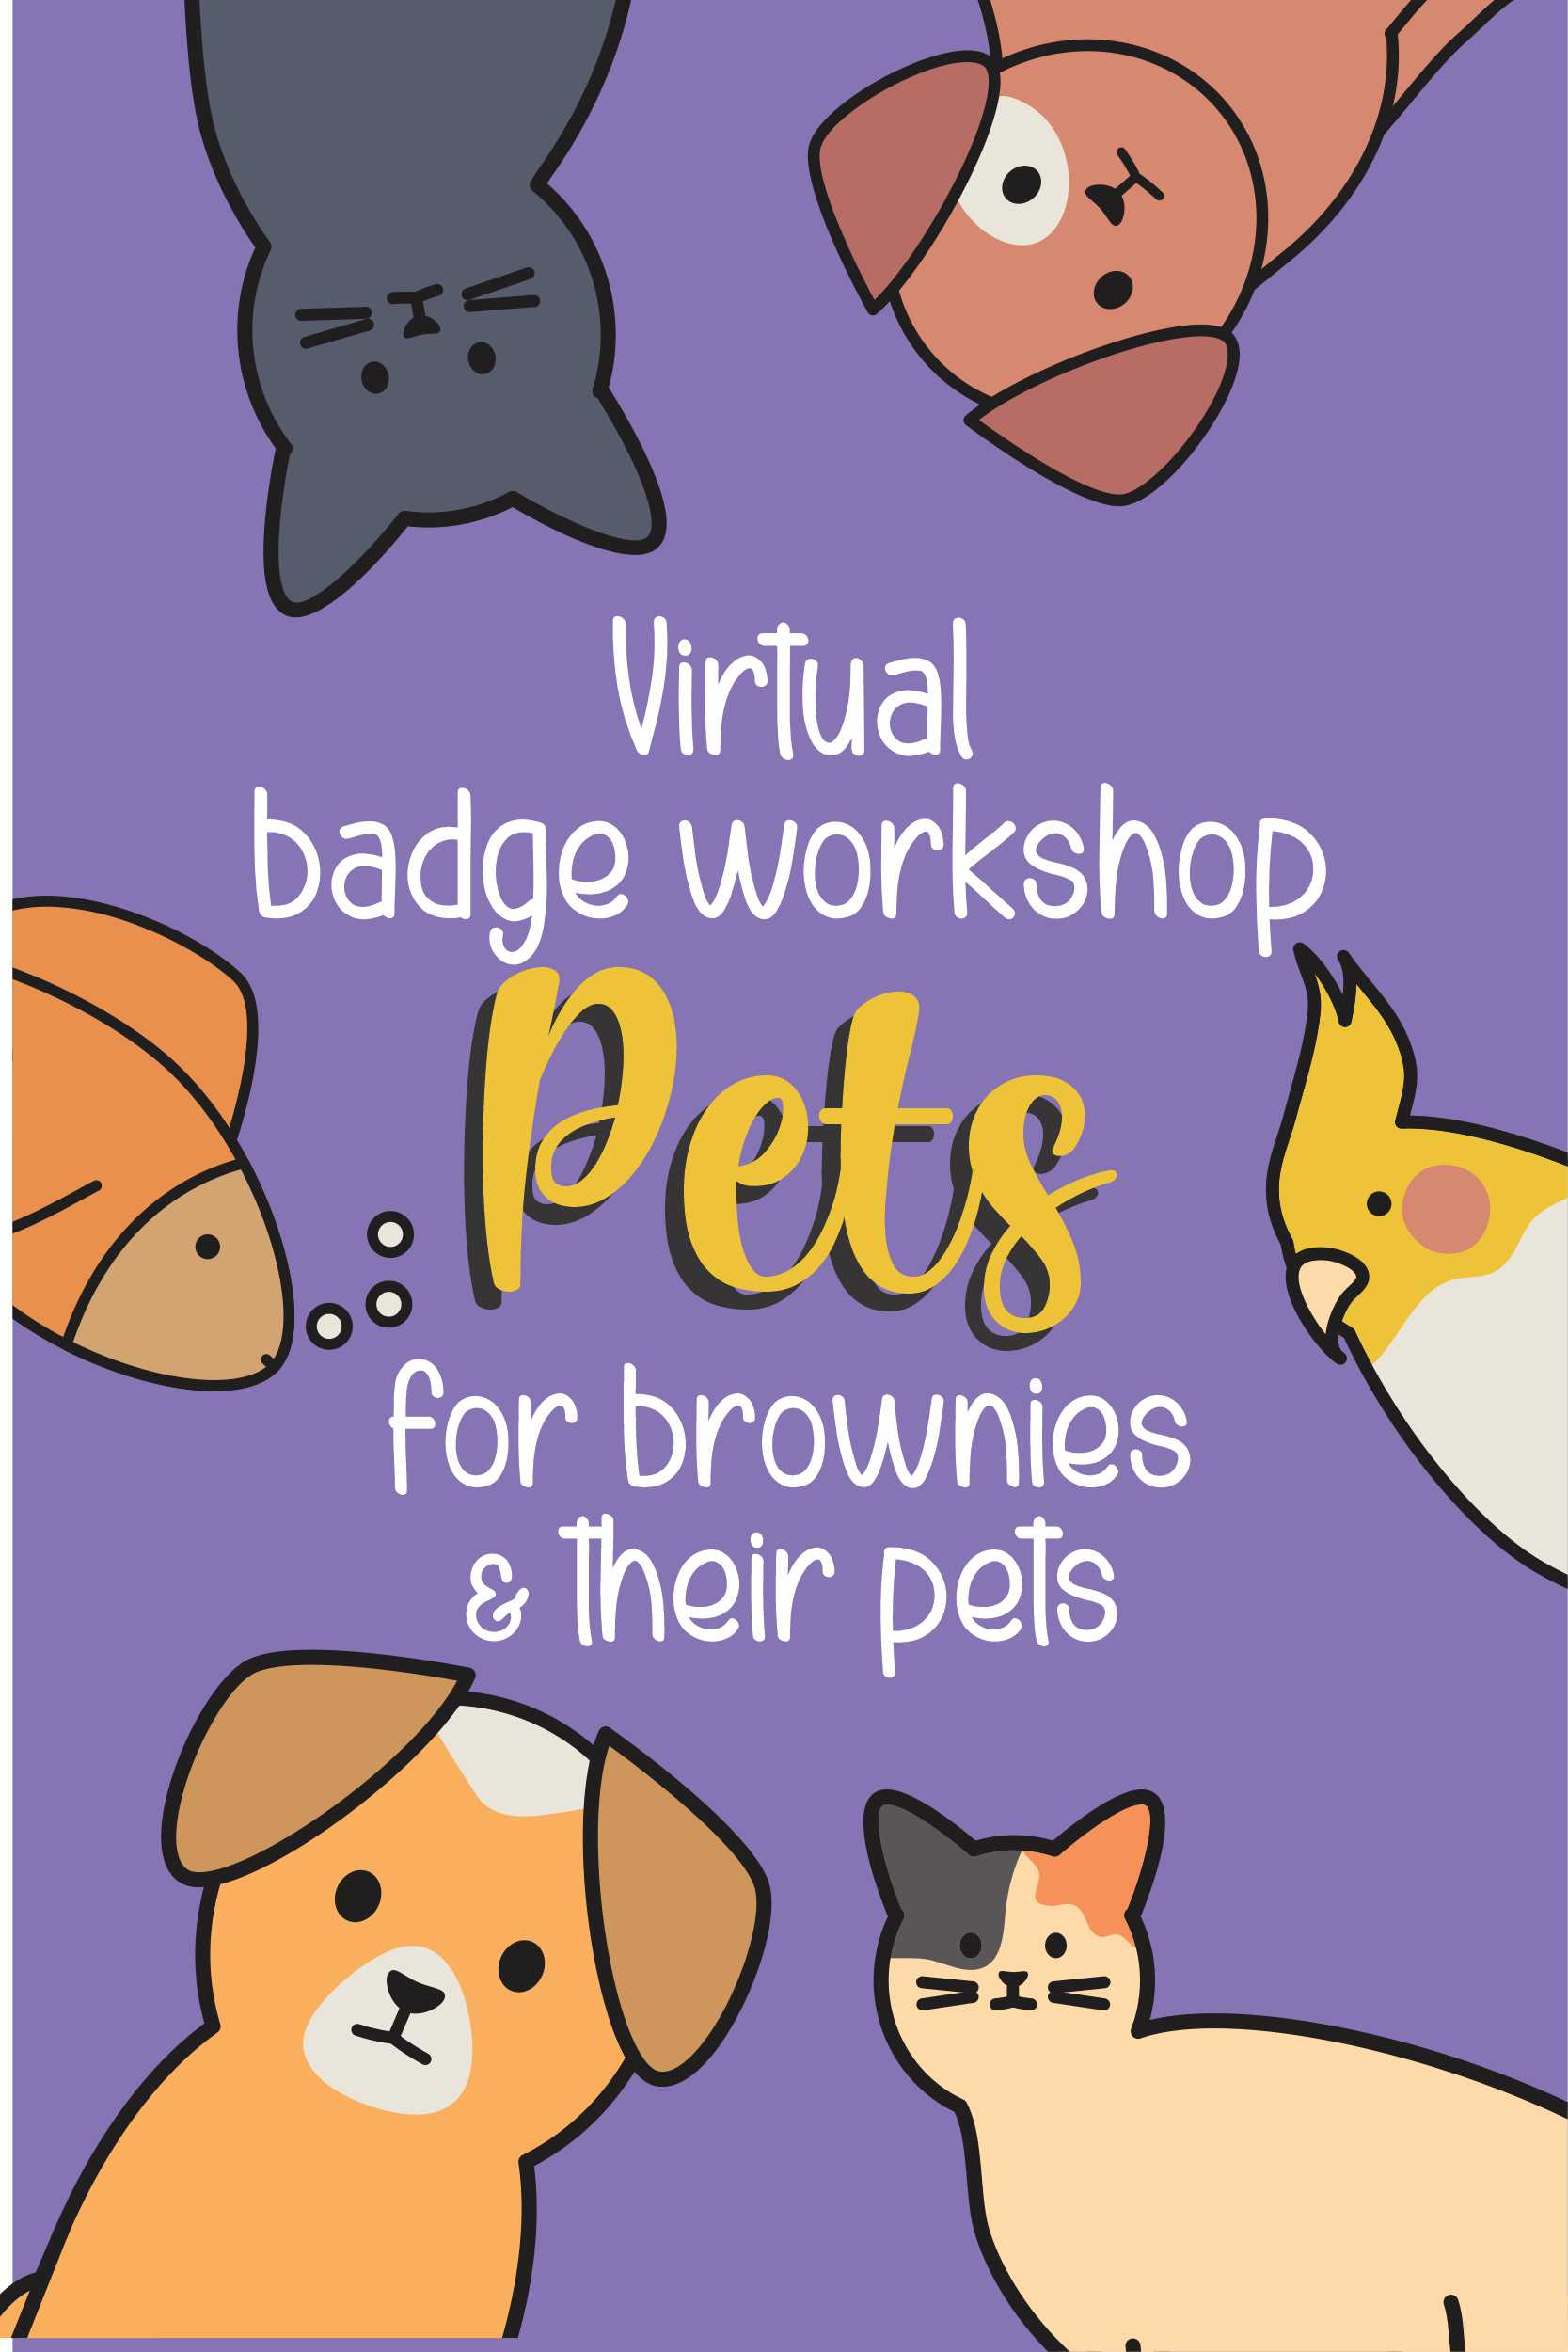 Brownies get to find out what it's like to work for the ASPCA and bring a pet to the meeting! #makingfriends #pets #animals #aspca #bringapet #girlscouts #gsbadges #brownies #gsbrownies #petbadge #browniebadge #funpatch #virtualmeeting #Onlineclass via @gsleader411